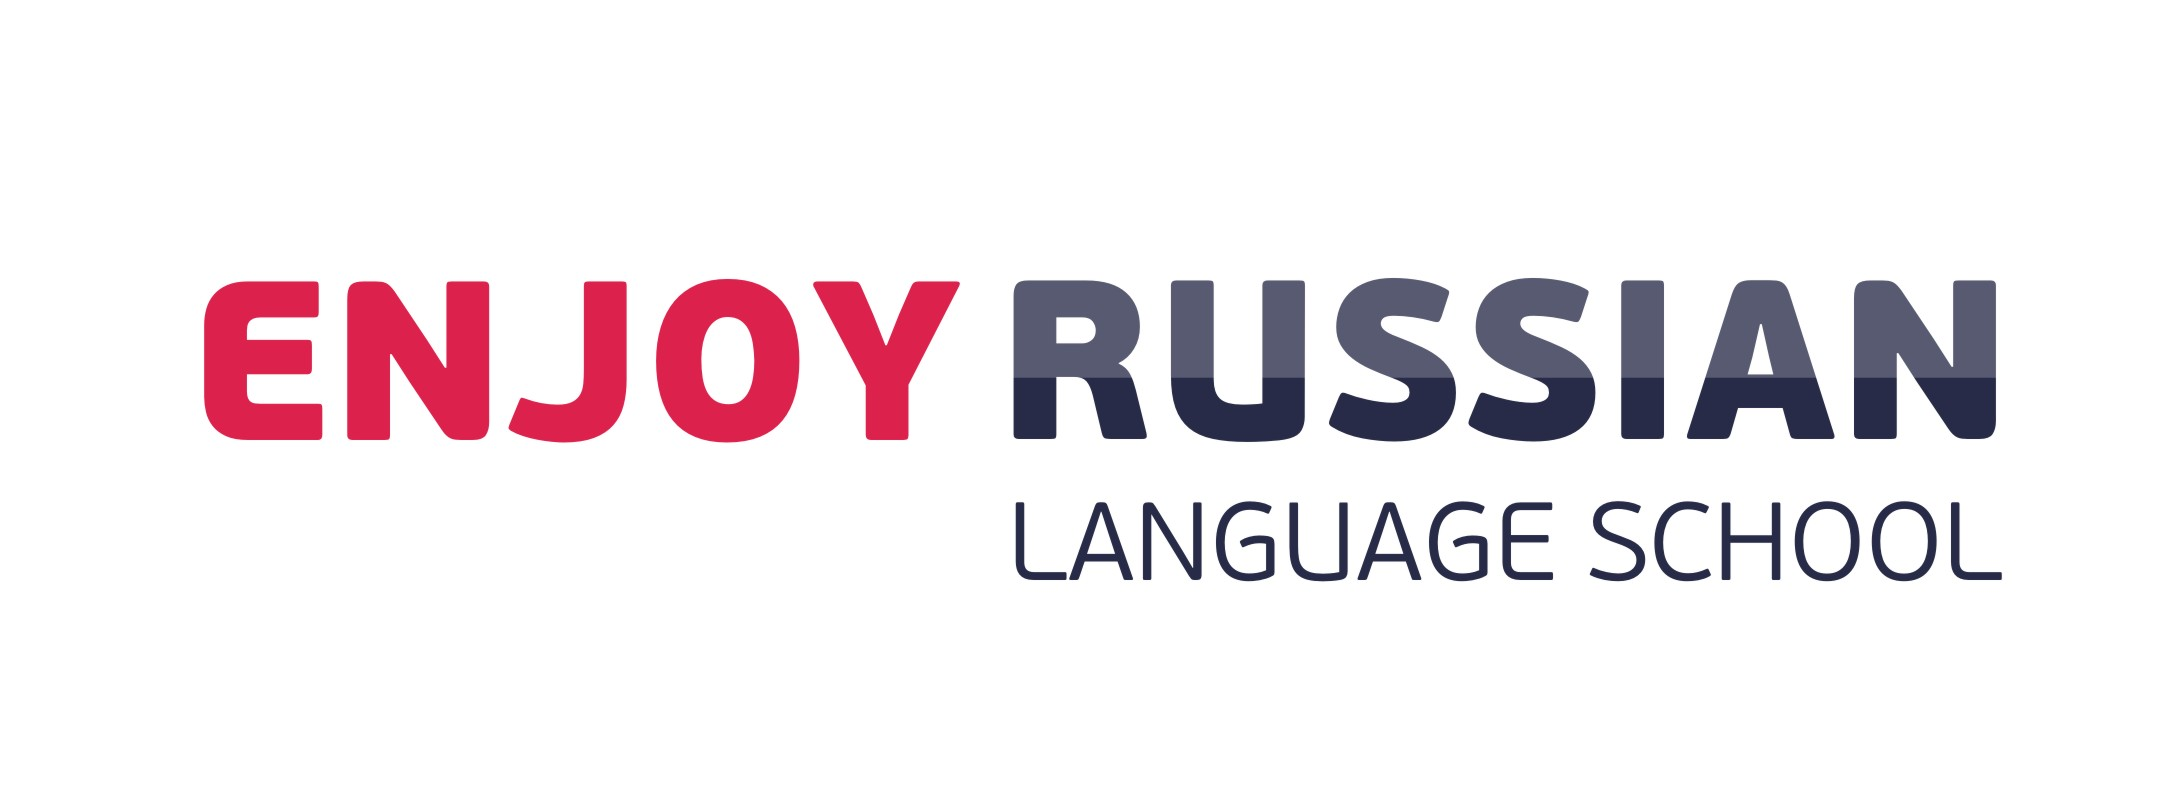 Enjoy Russian Language School